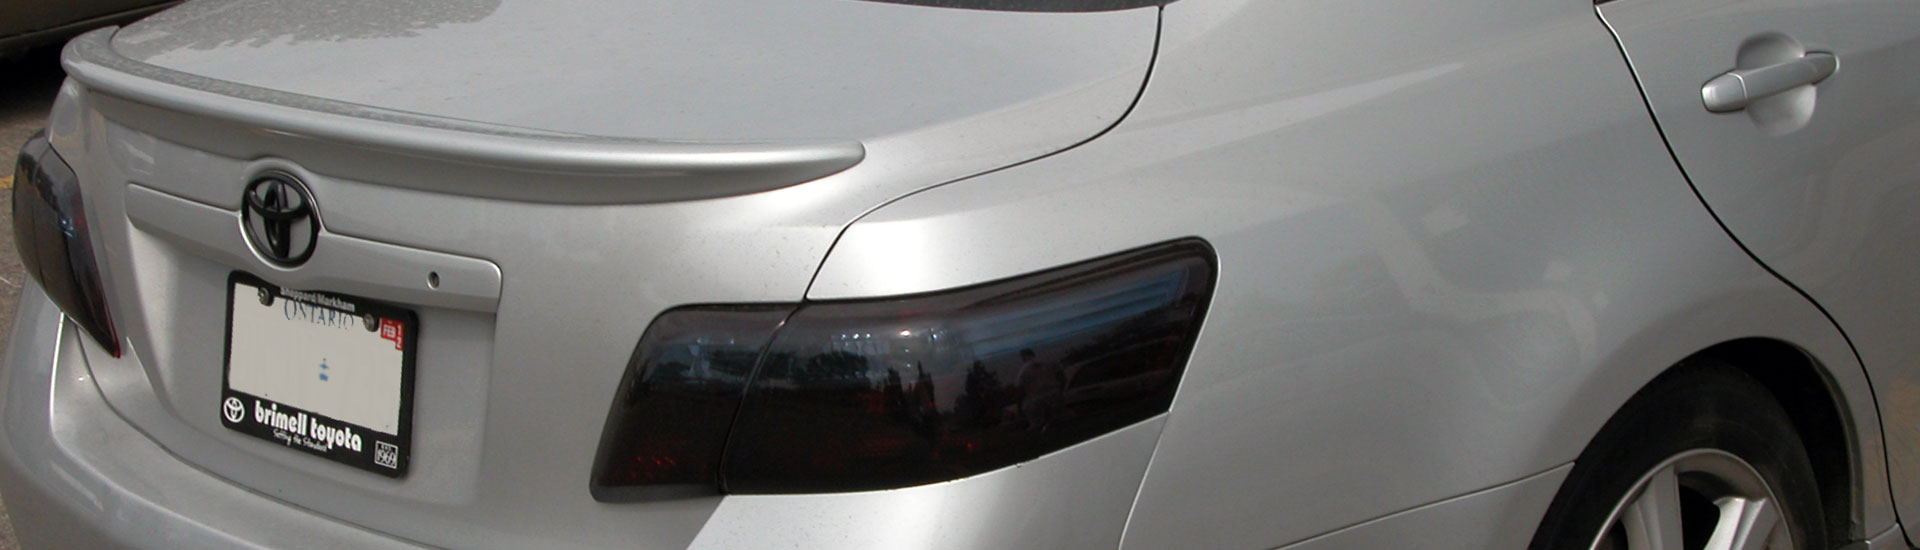 Toyota Tail Light Tint Covers